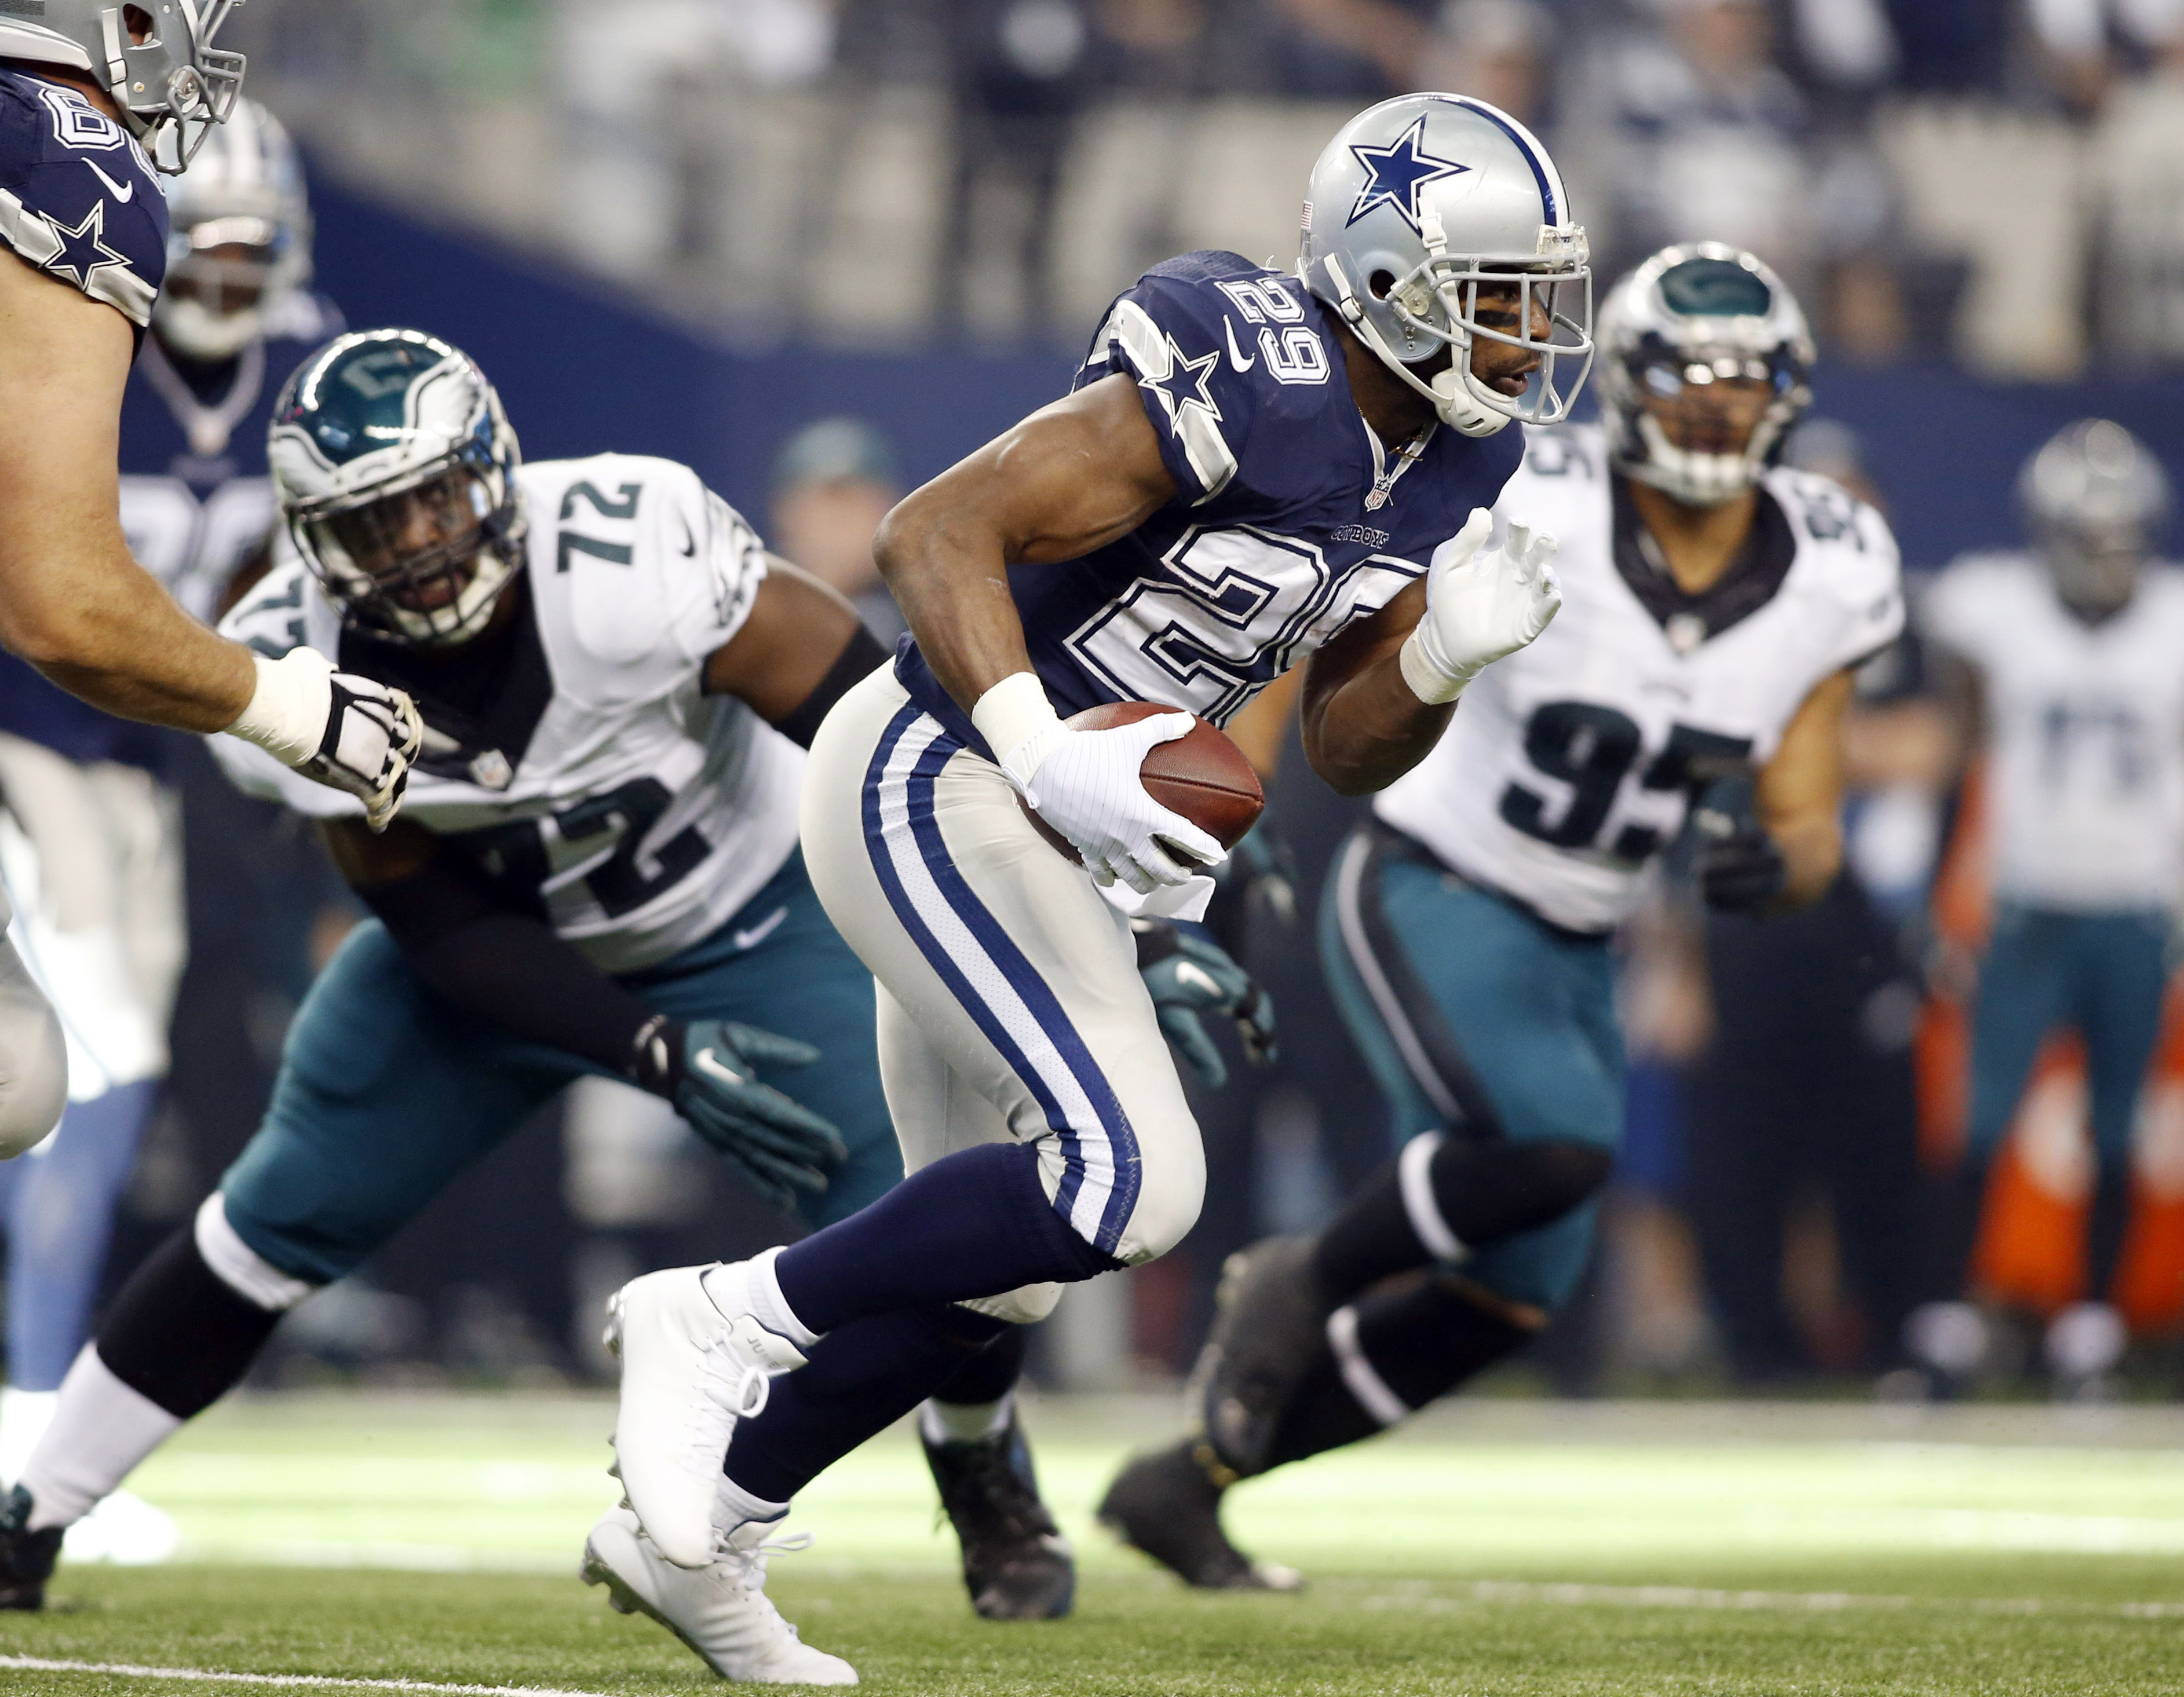 Rather than terrorizing the Eagles, might RB DeMarco Murray be joining them? (Tim Heitman, USA TODAY Sports)